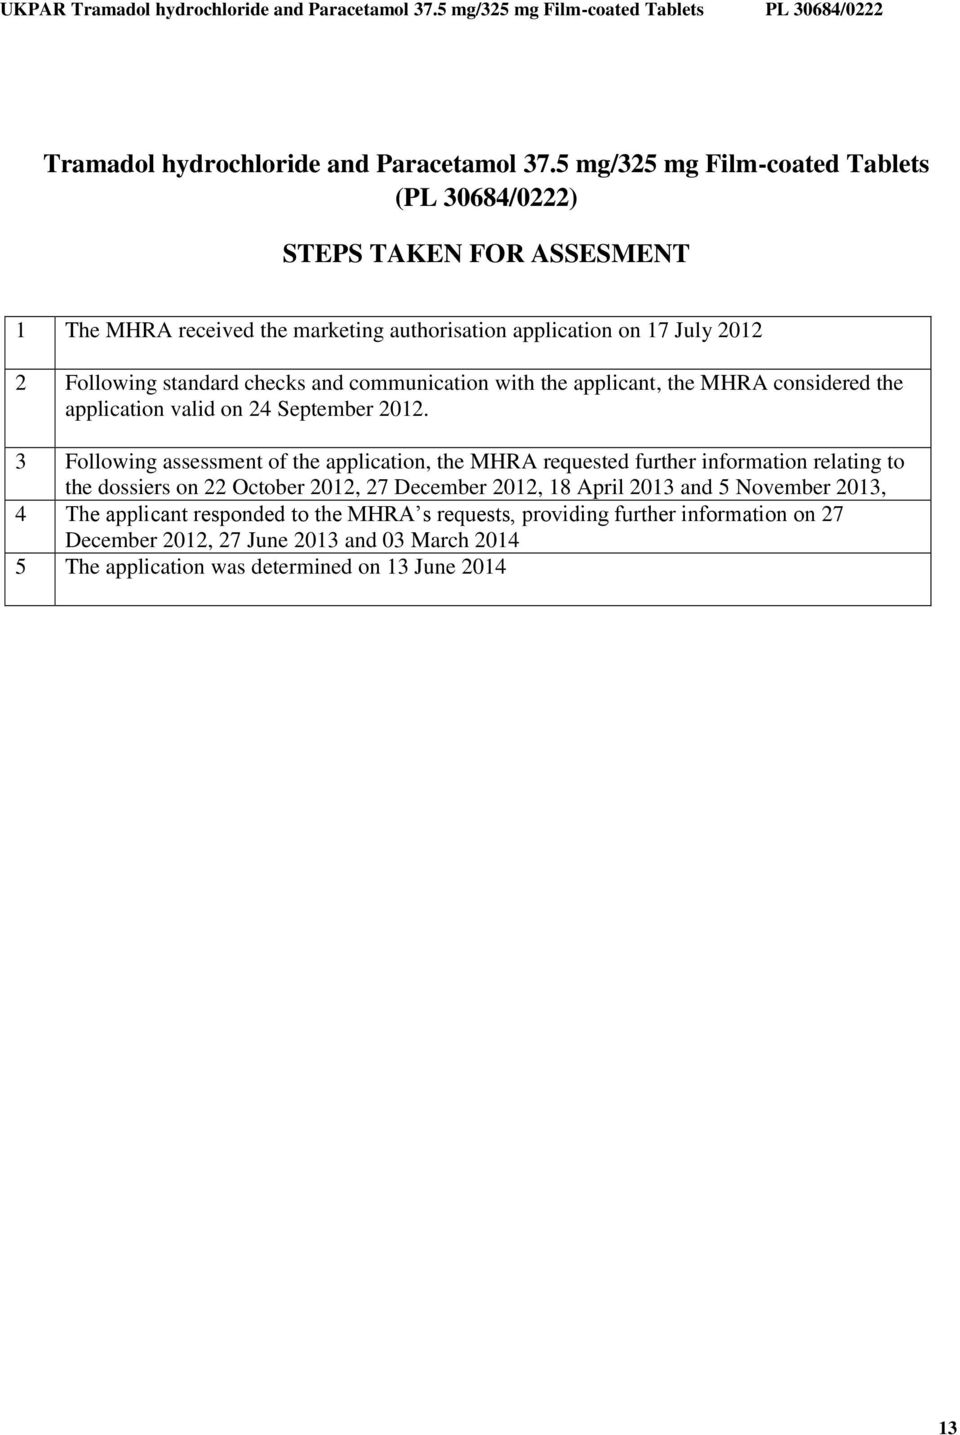 checks and communication with the applicant, the MHRA considered the application valid on 24 September 2012.